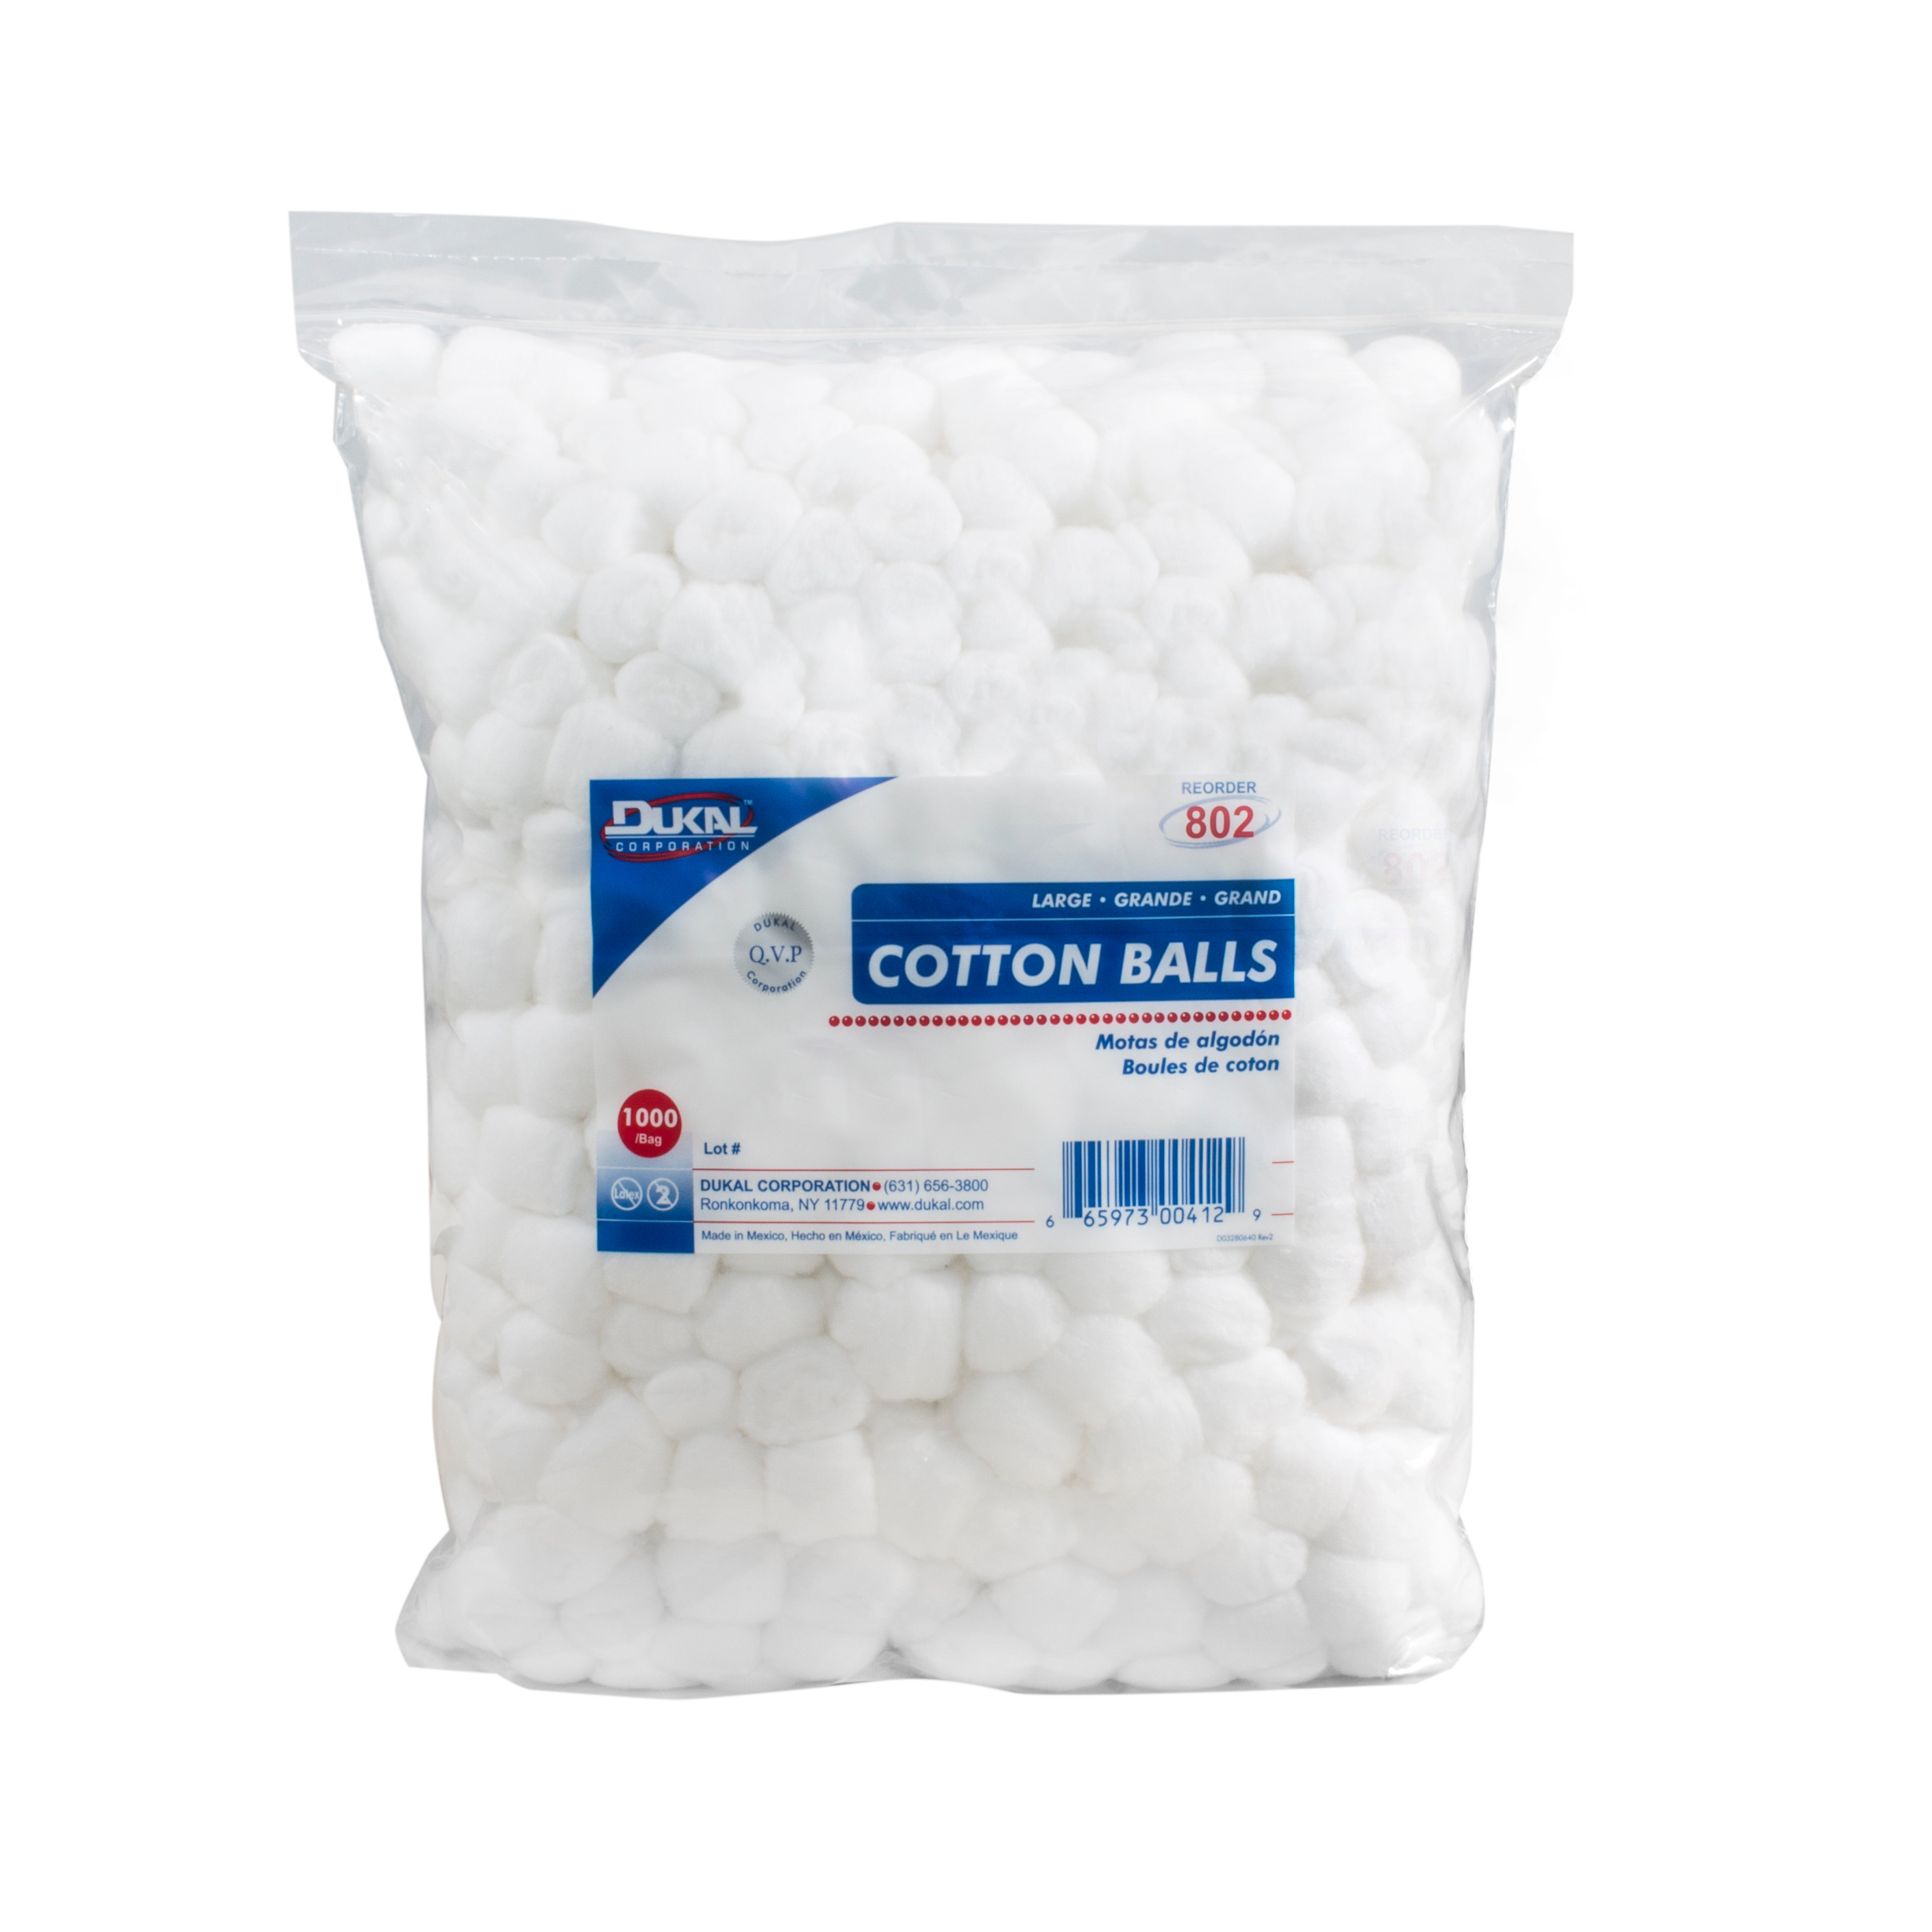 Dukal Large Cotton Balls